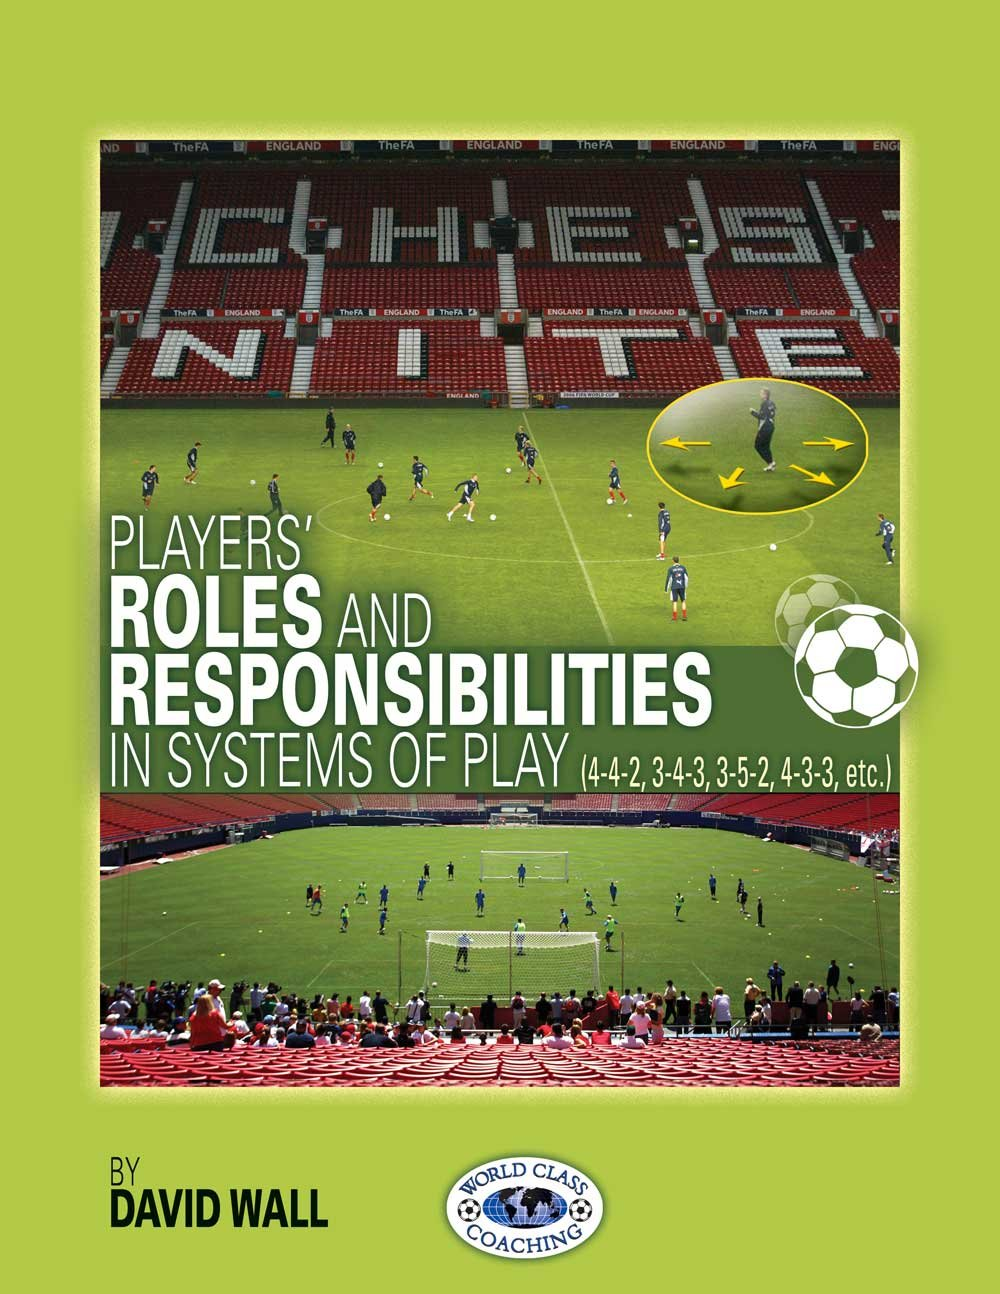 Players' Roles & Responsibilities in Systems of Play